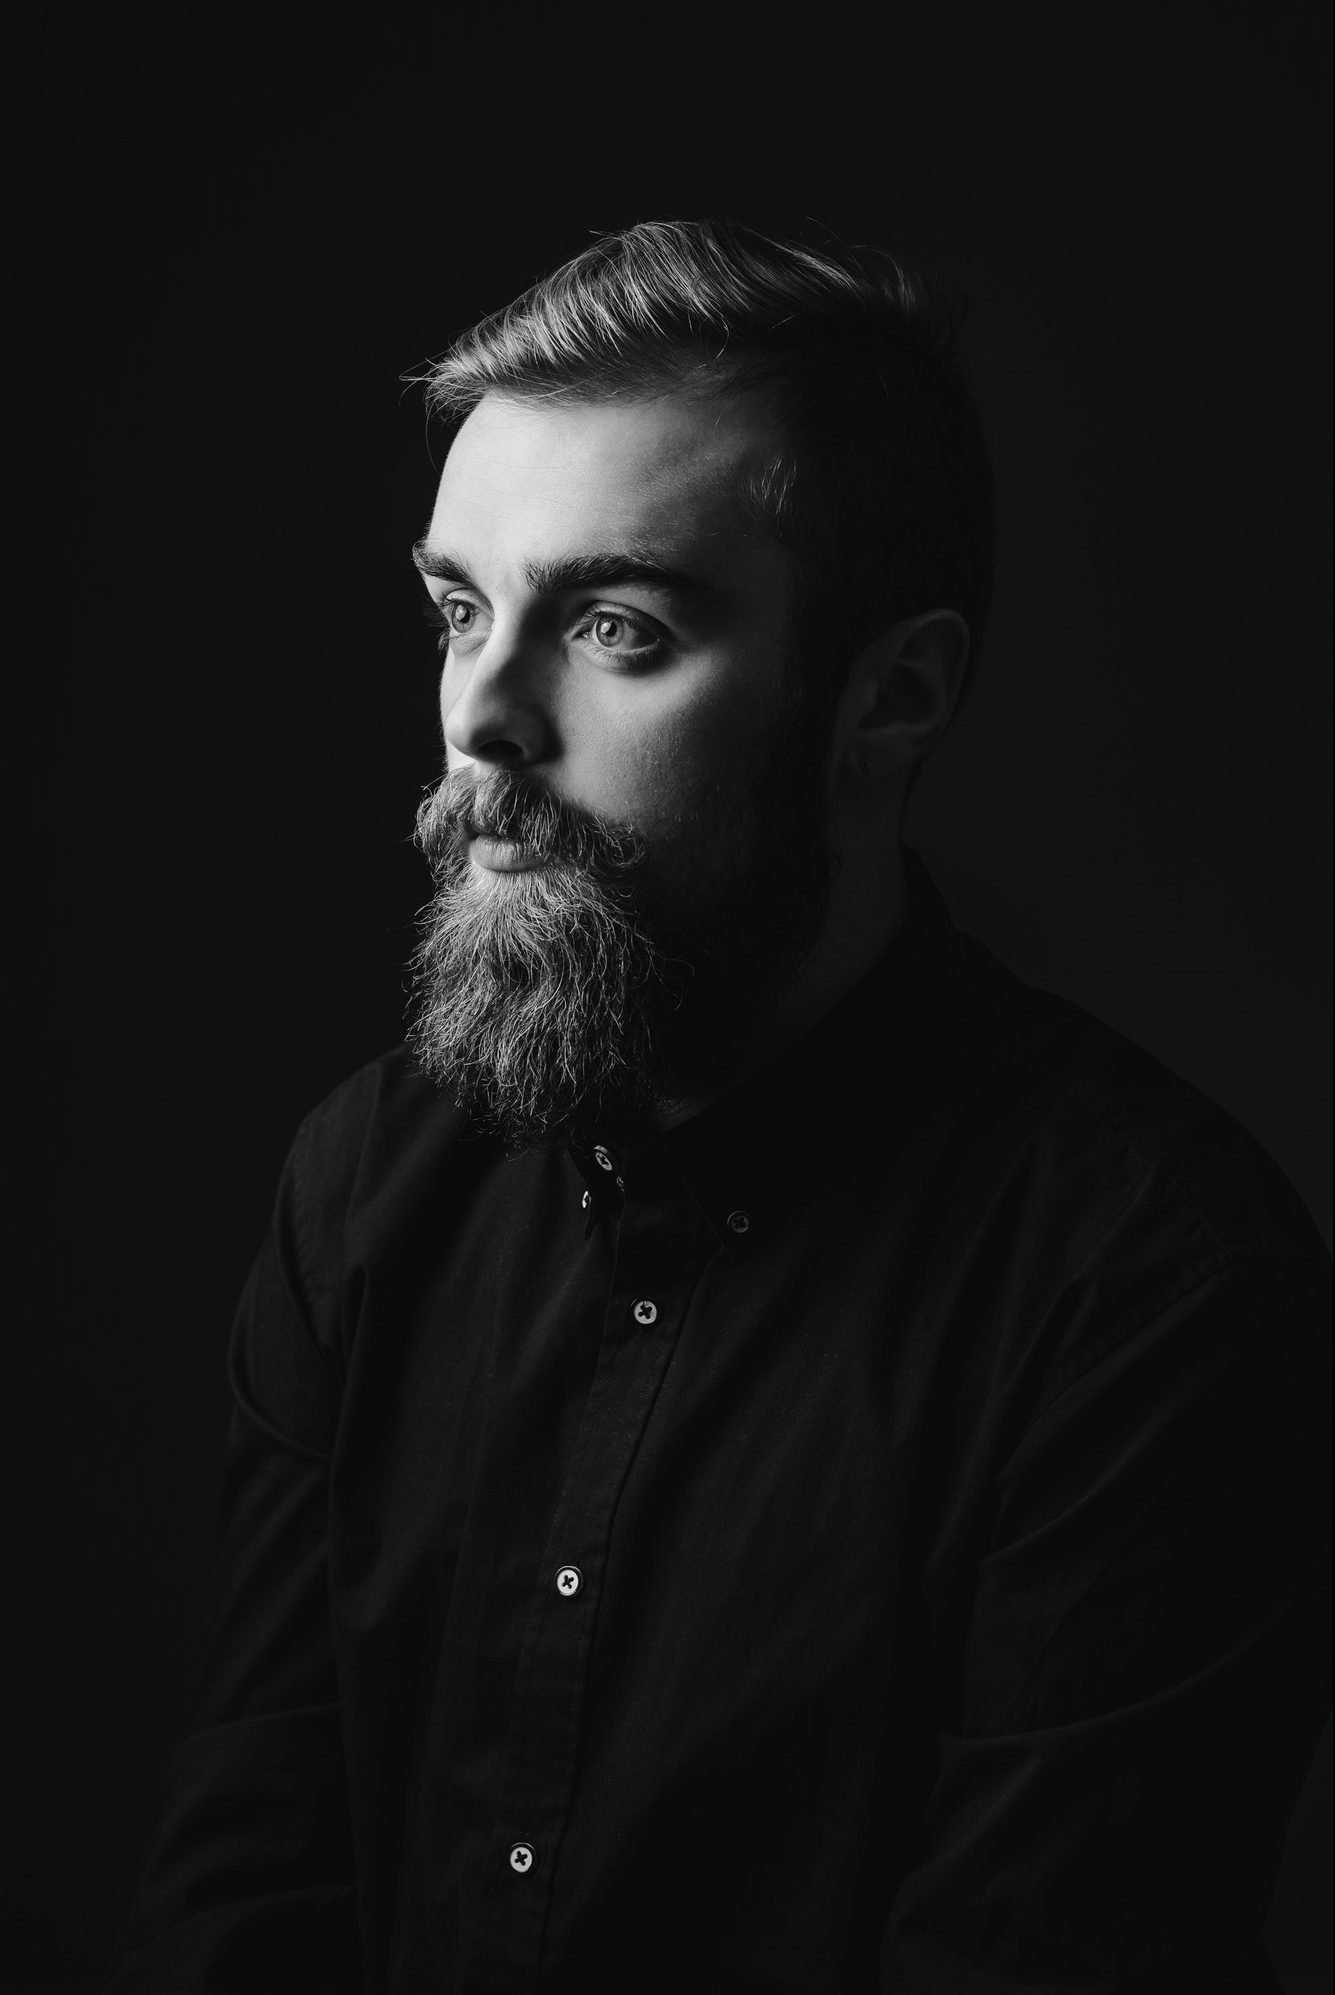 Black and white portrait of a stylish man with a beard and stylish hairdo dressed in the black shirt